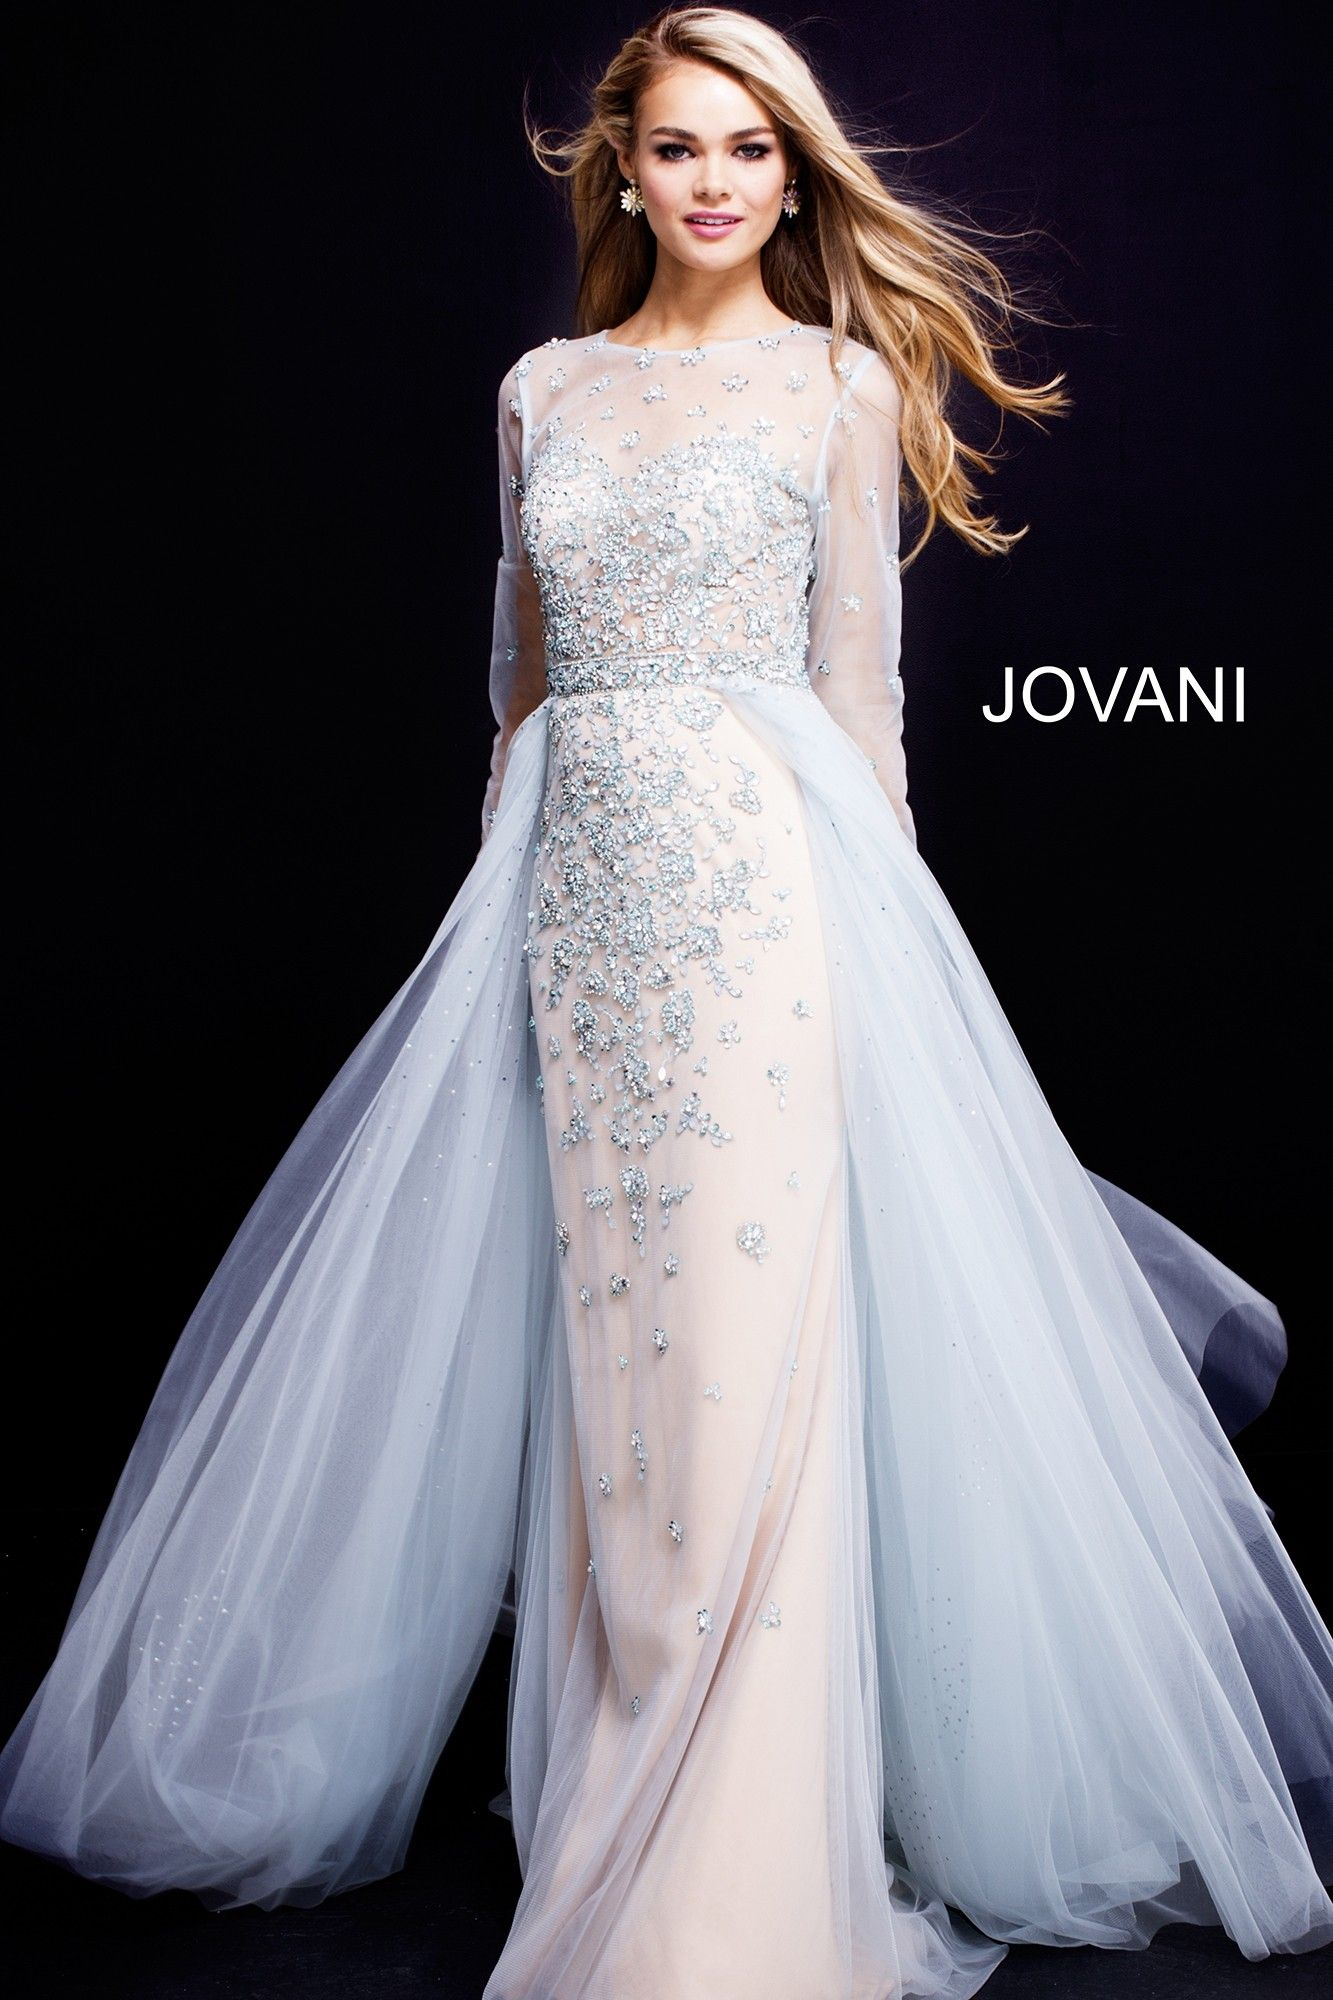 2d23710a256 Dreams come true in Jovani 53743. This magical ball gown delicately  blossoms with jeweled flowers